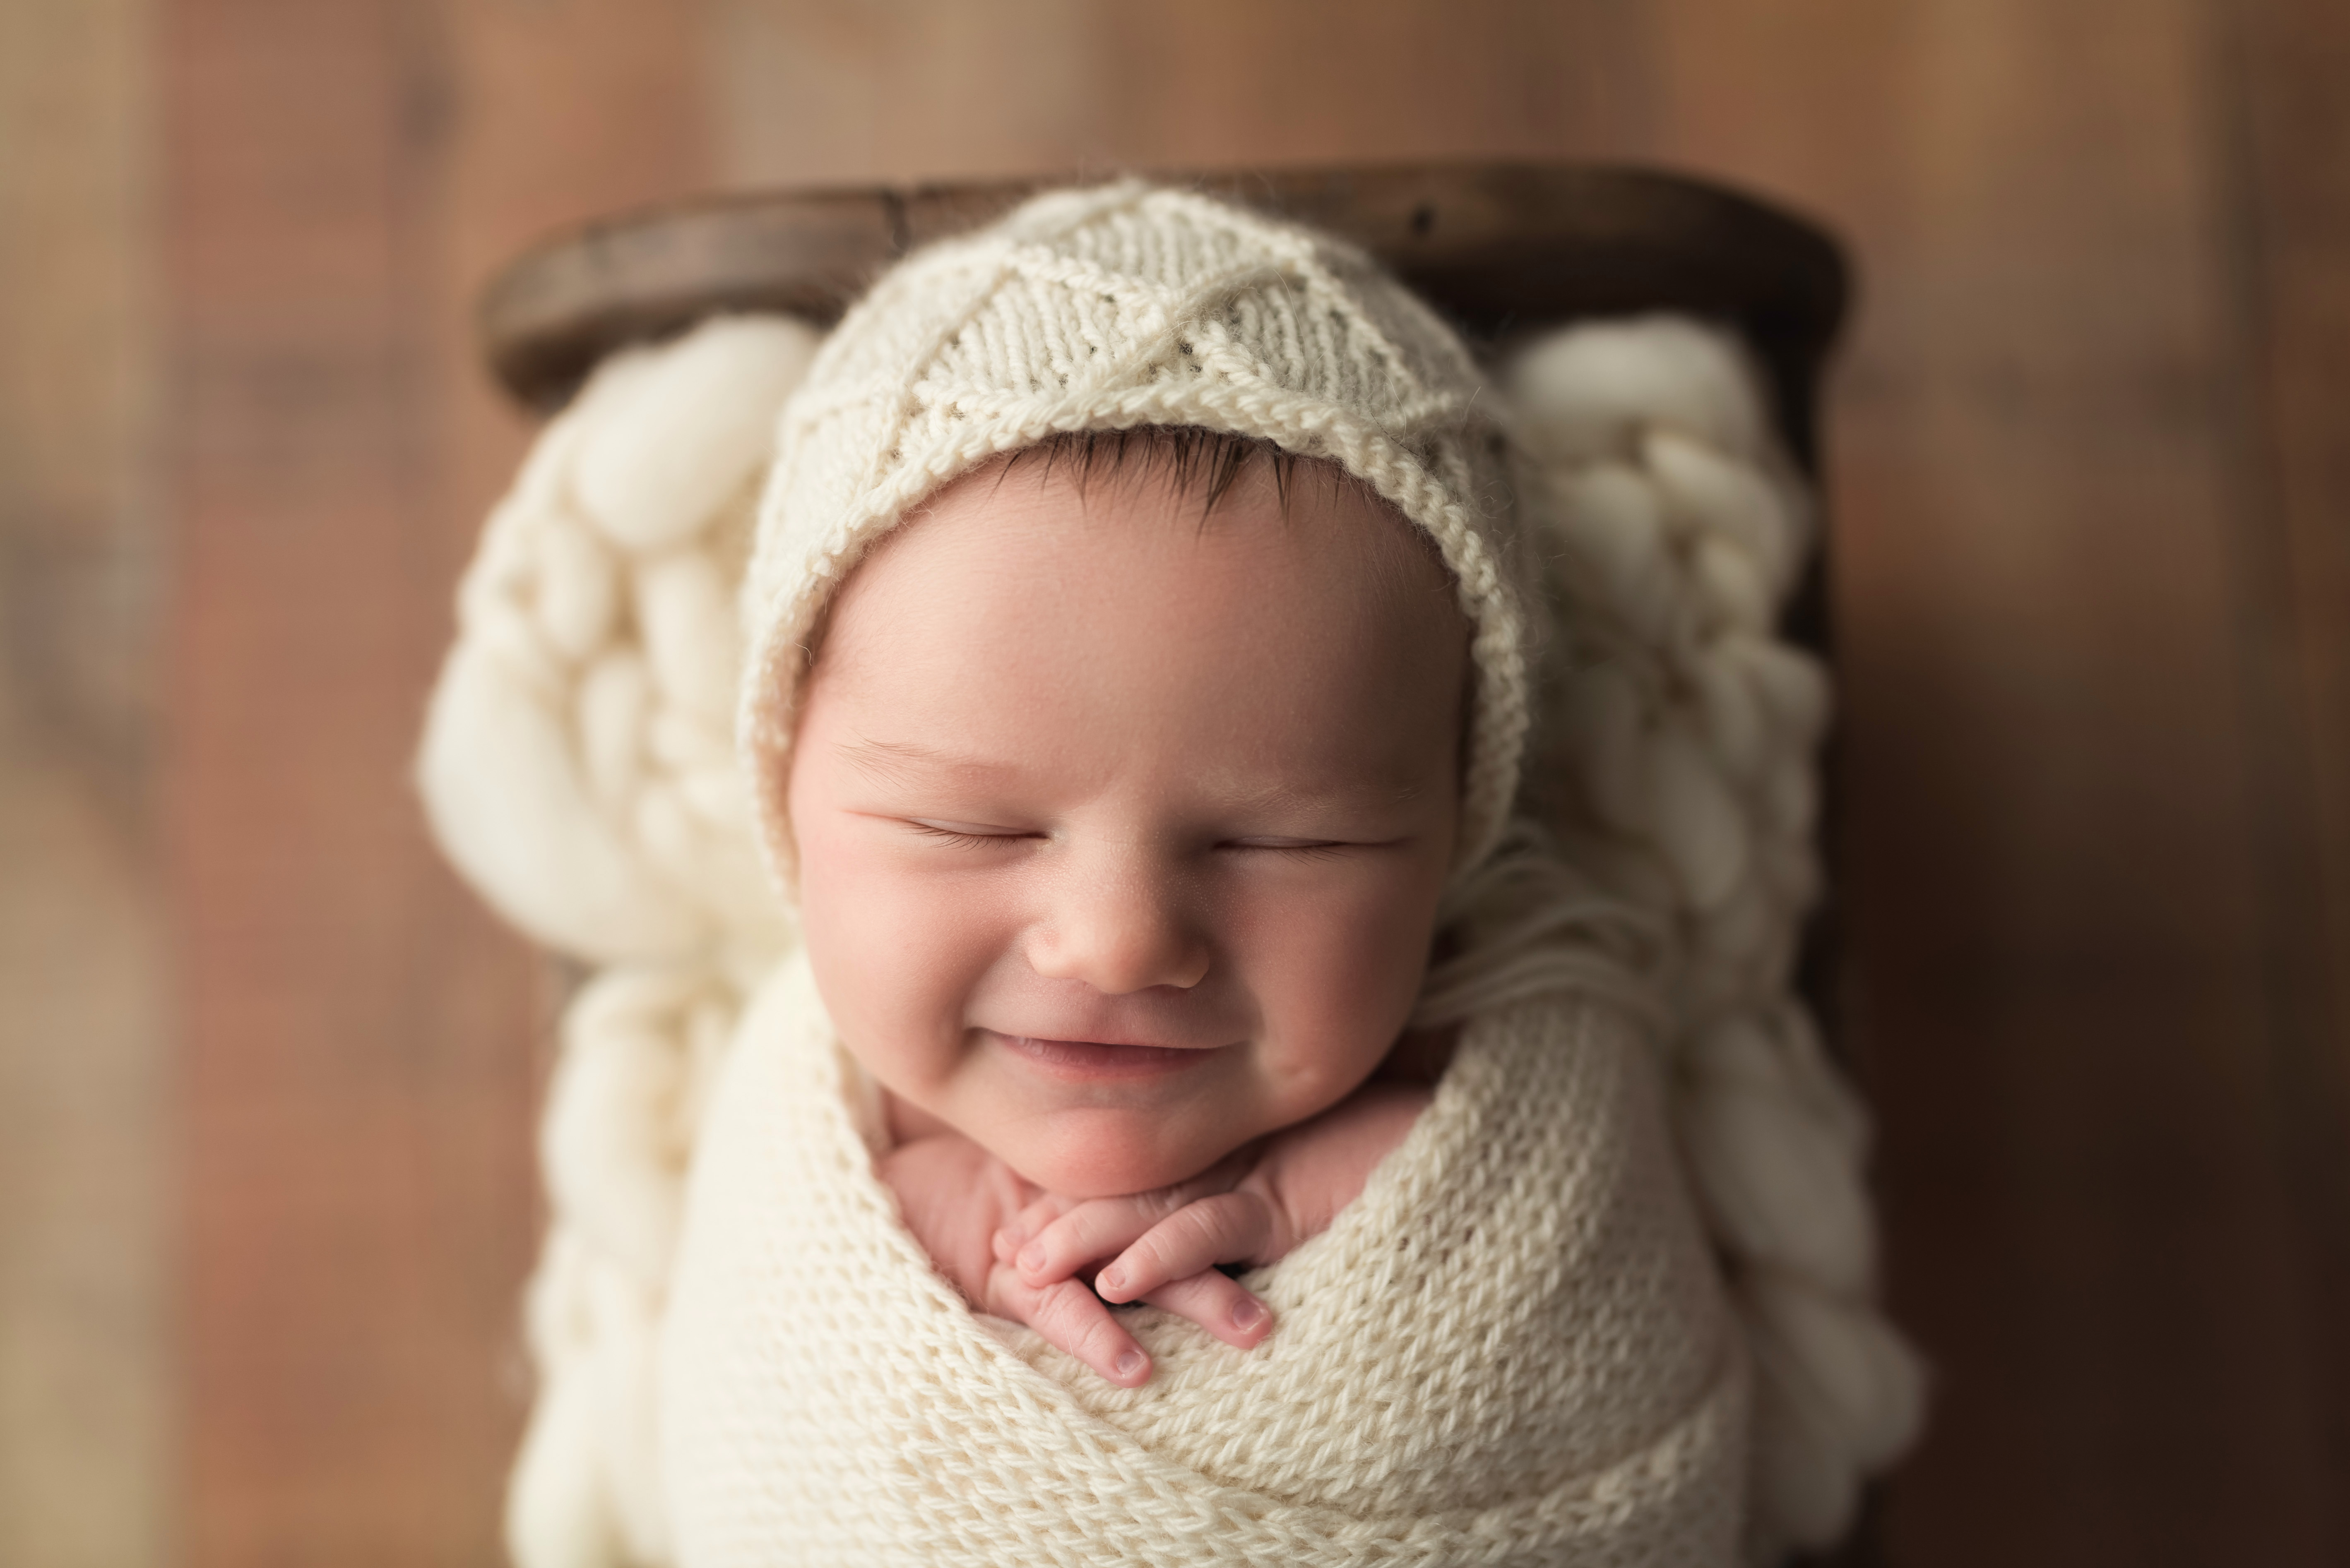 A newborn baby smiles during her photography session in Cedar Rapids